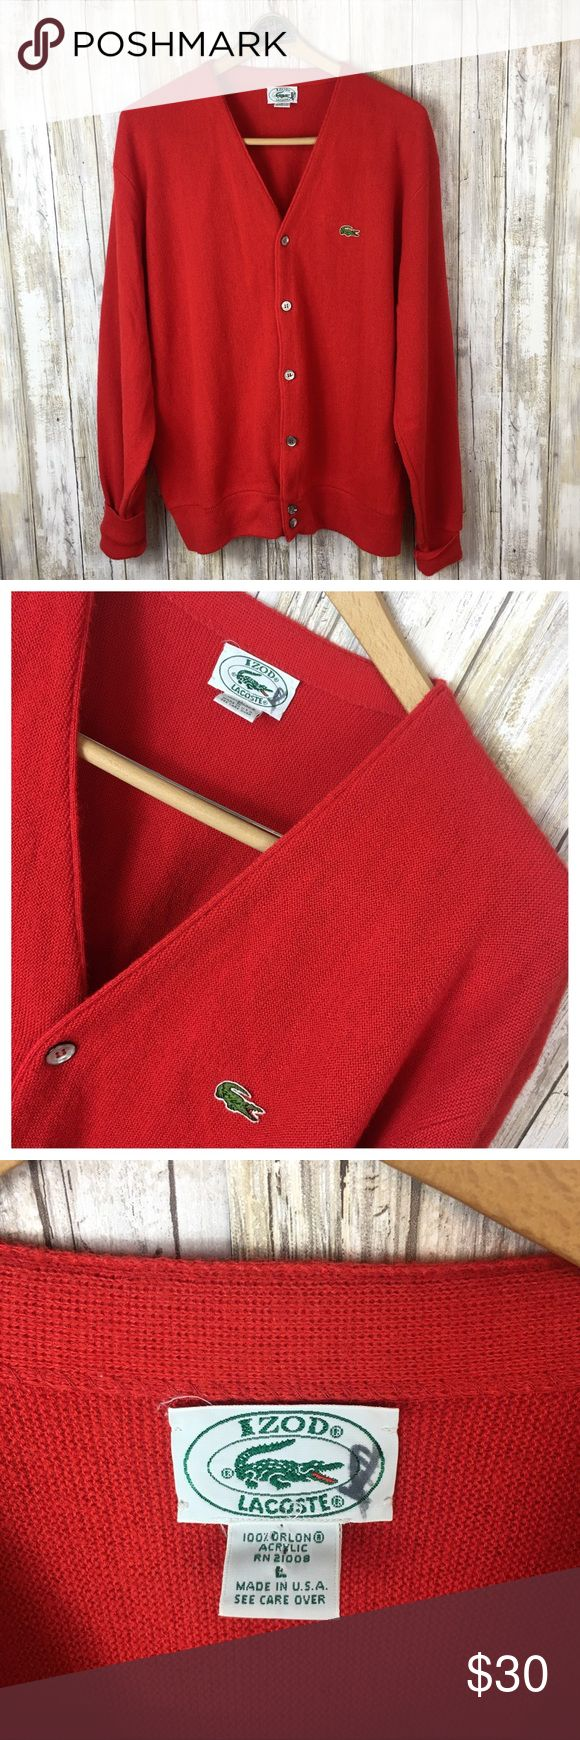 """Vintage Lacost Cardigan Vintage Lacoste Cardigan. Styled for a man but could be unisex. Size Large Men's. 100% acrylic. No flaws. Preowned #010909 Measurements flat Chest 24"""" Length from shoulder 28"""" Sleeves 24.5"""" Lacoste Sweaters Cardigan"""